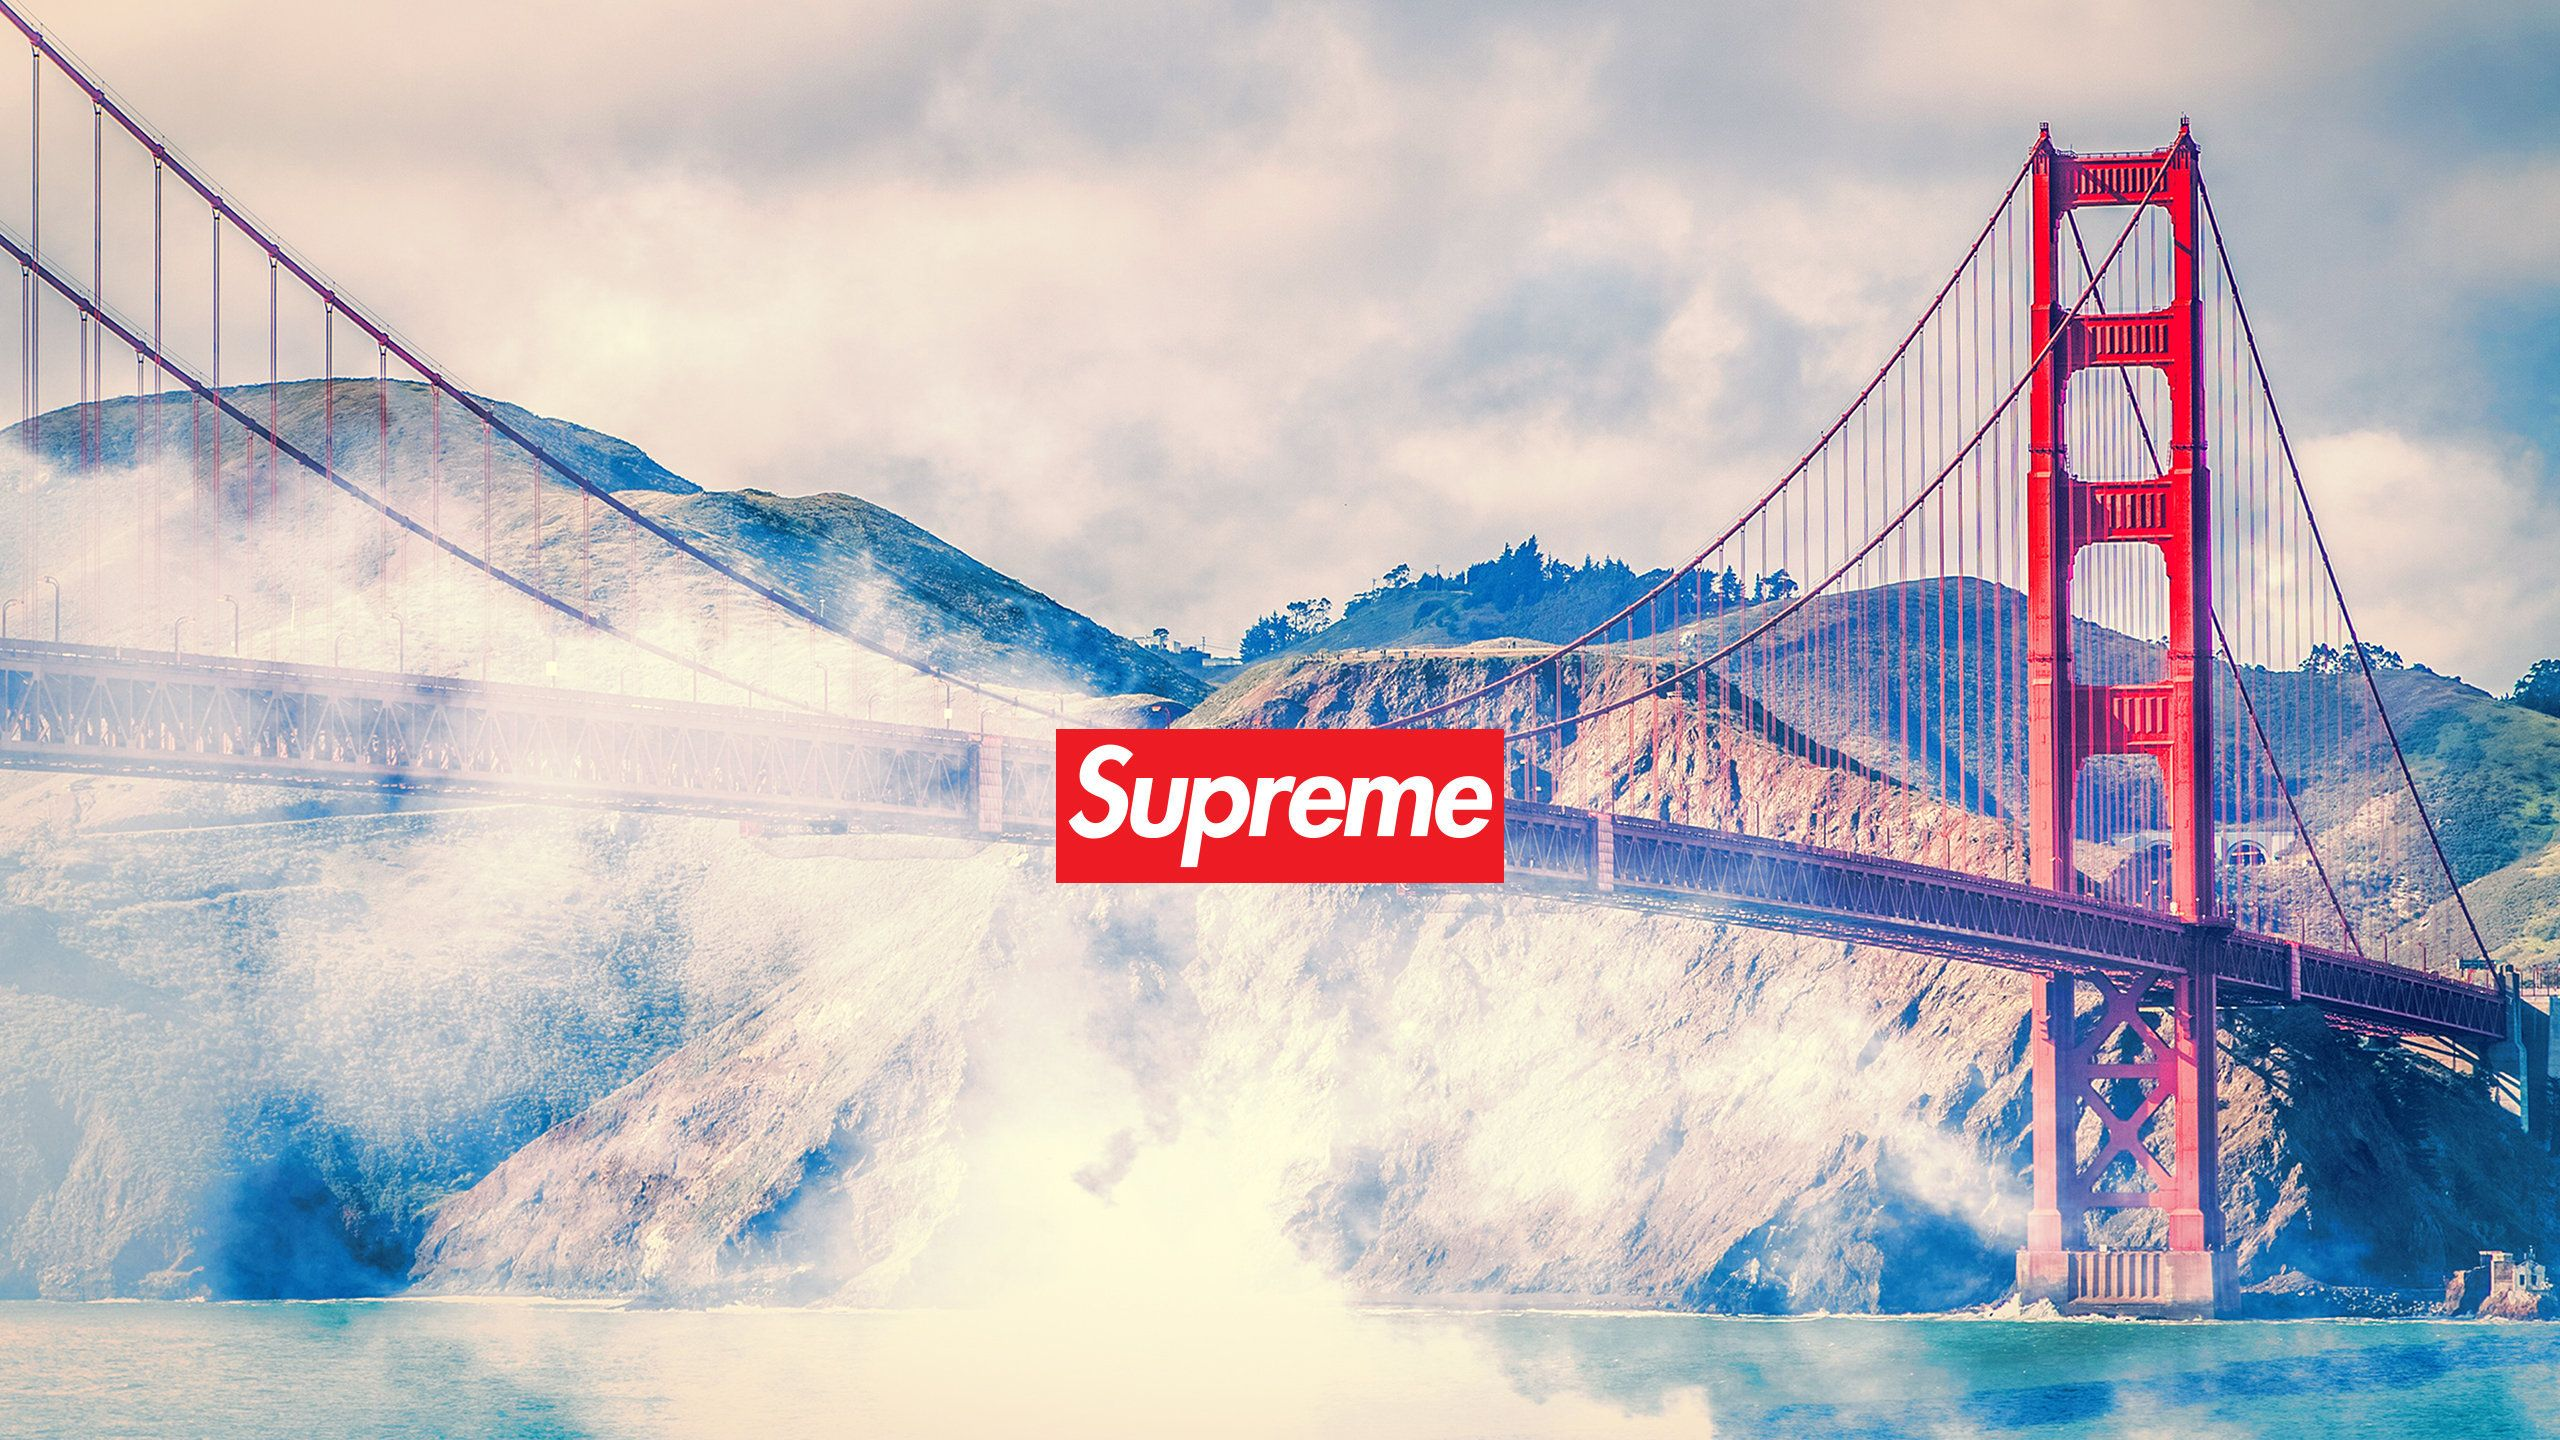 Best Images About Supreme On Pinterest Supreme Wallpaper